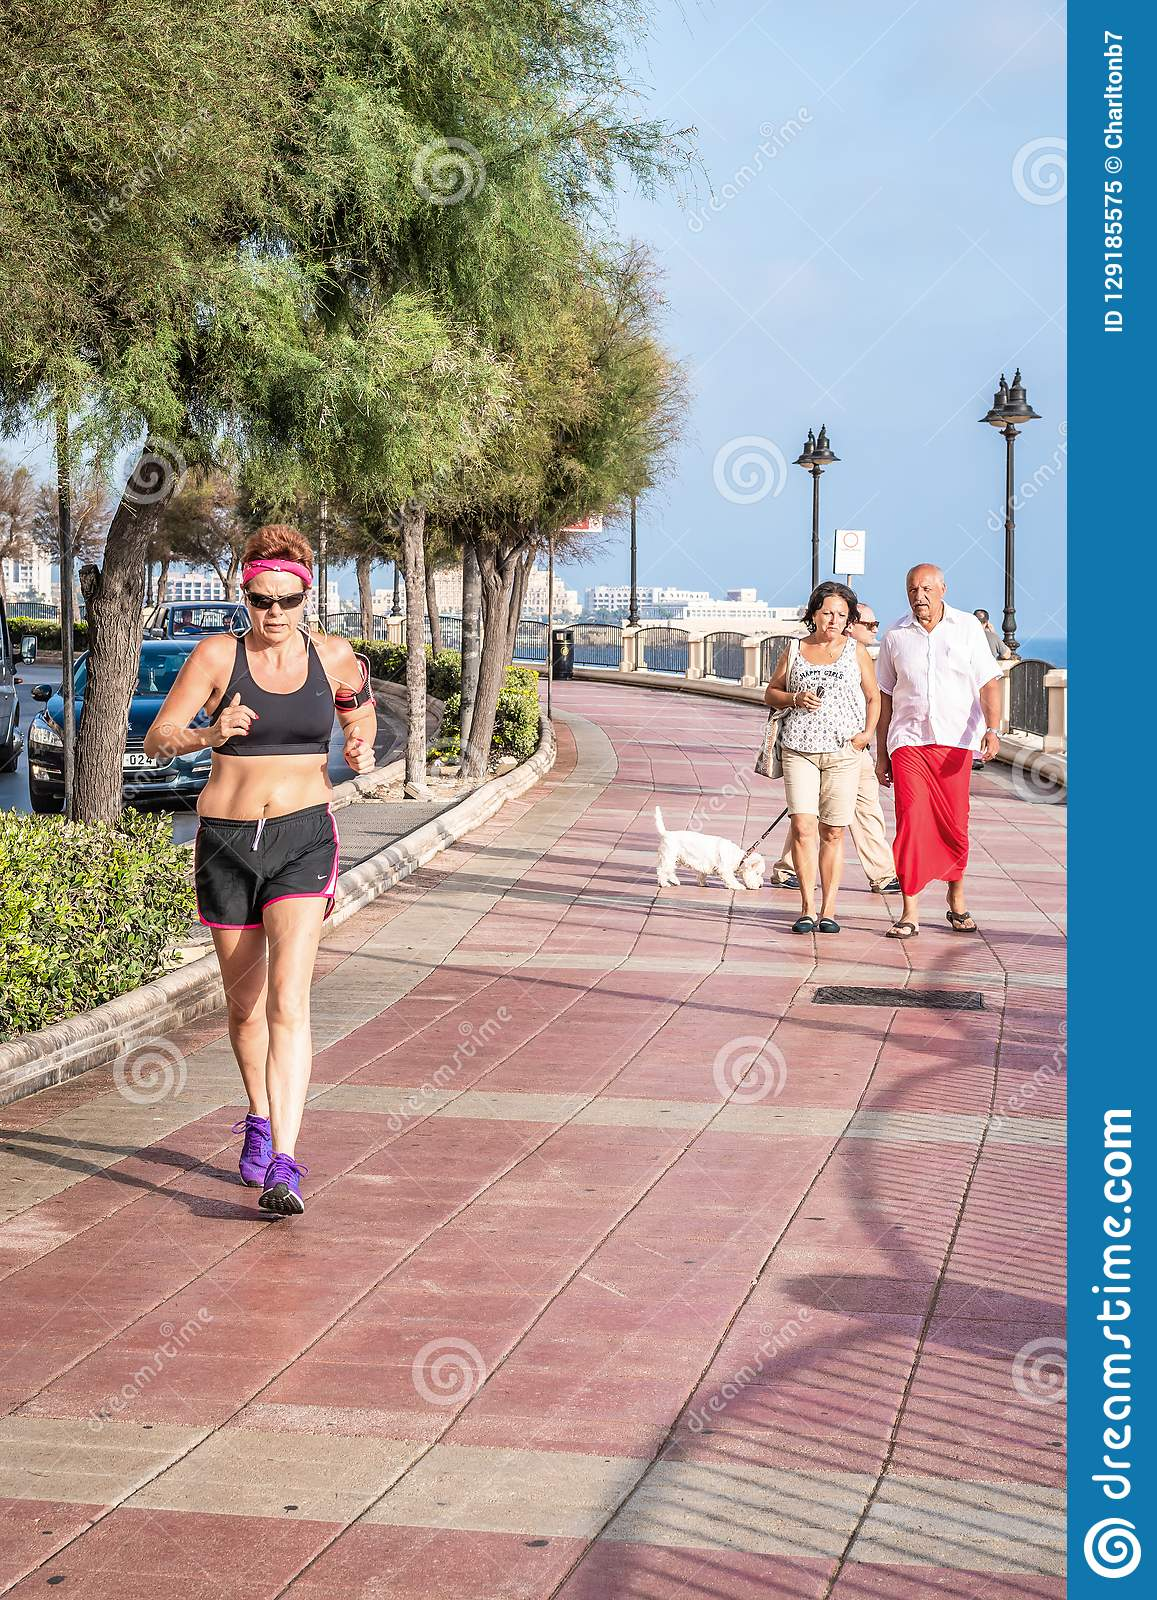 Woman Jogging with sports clothes